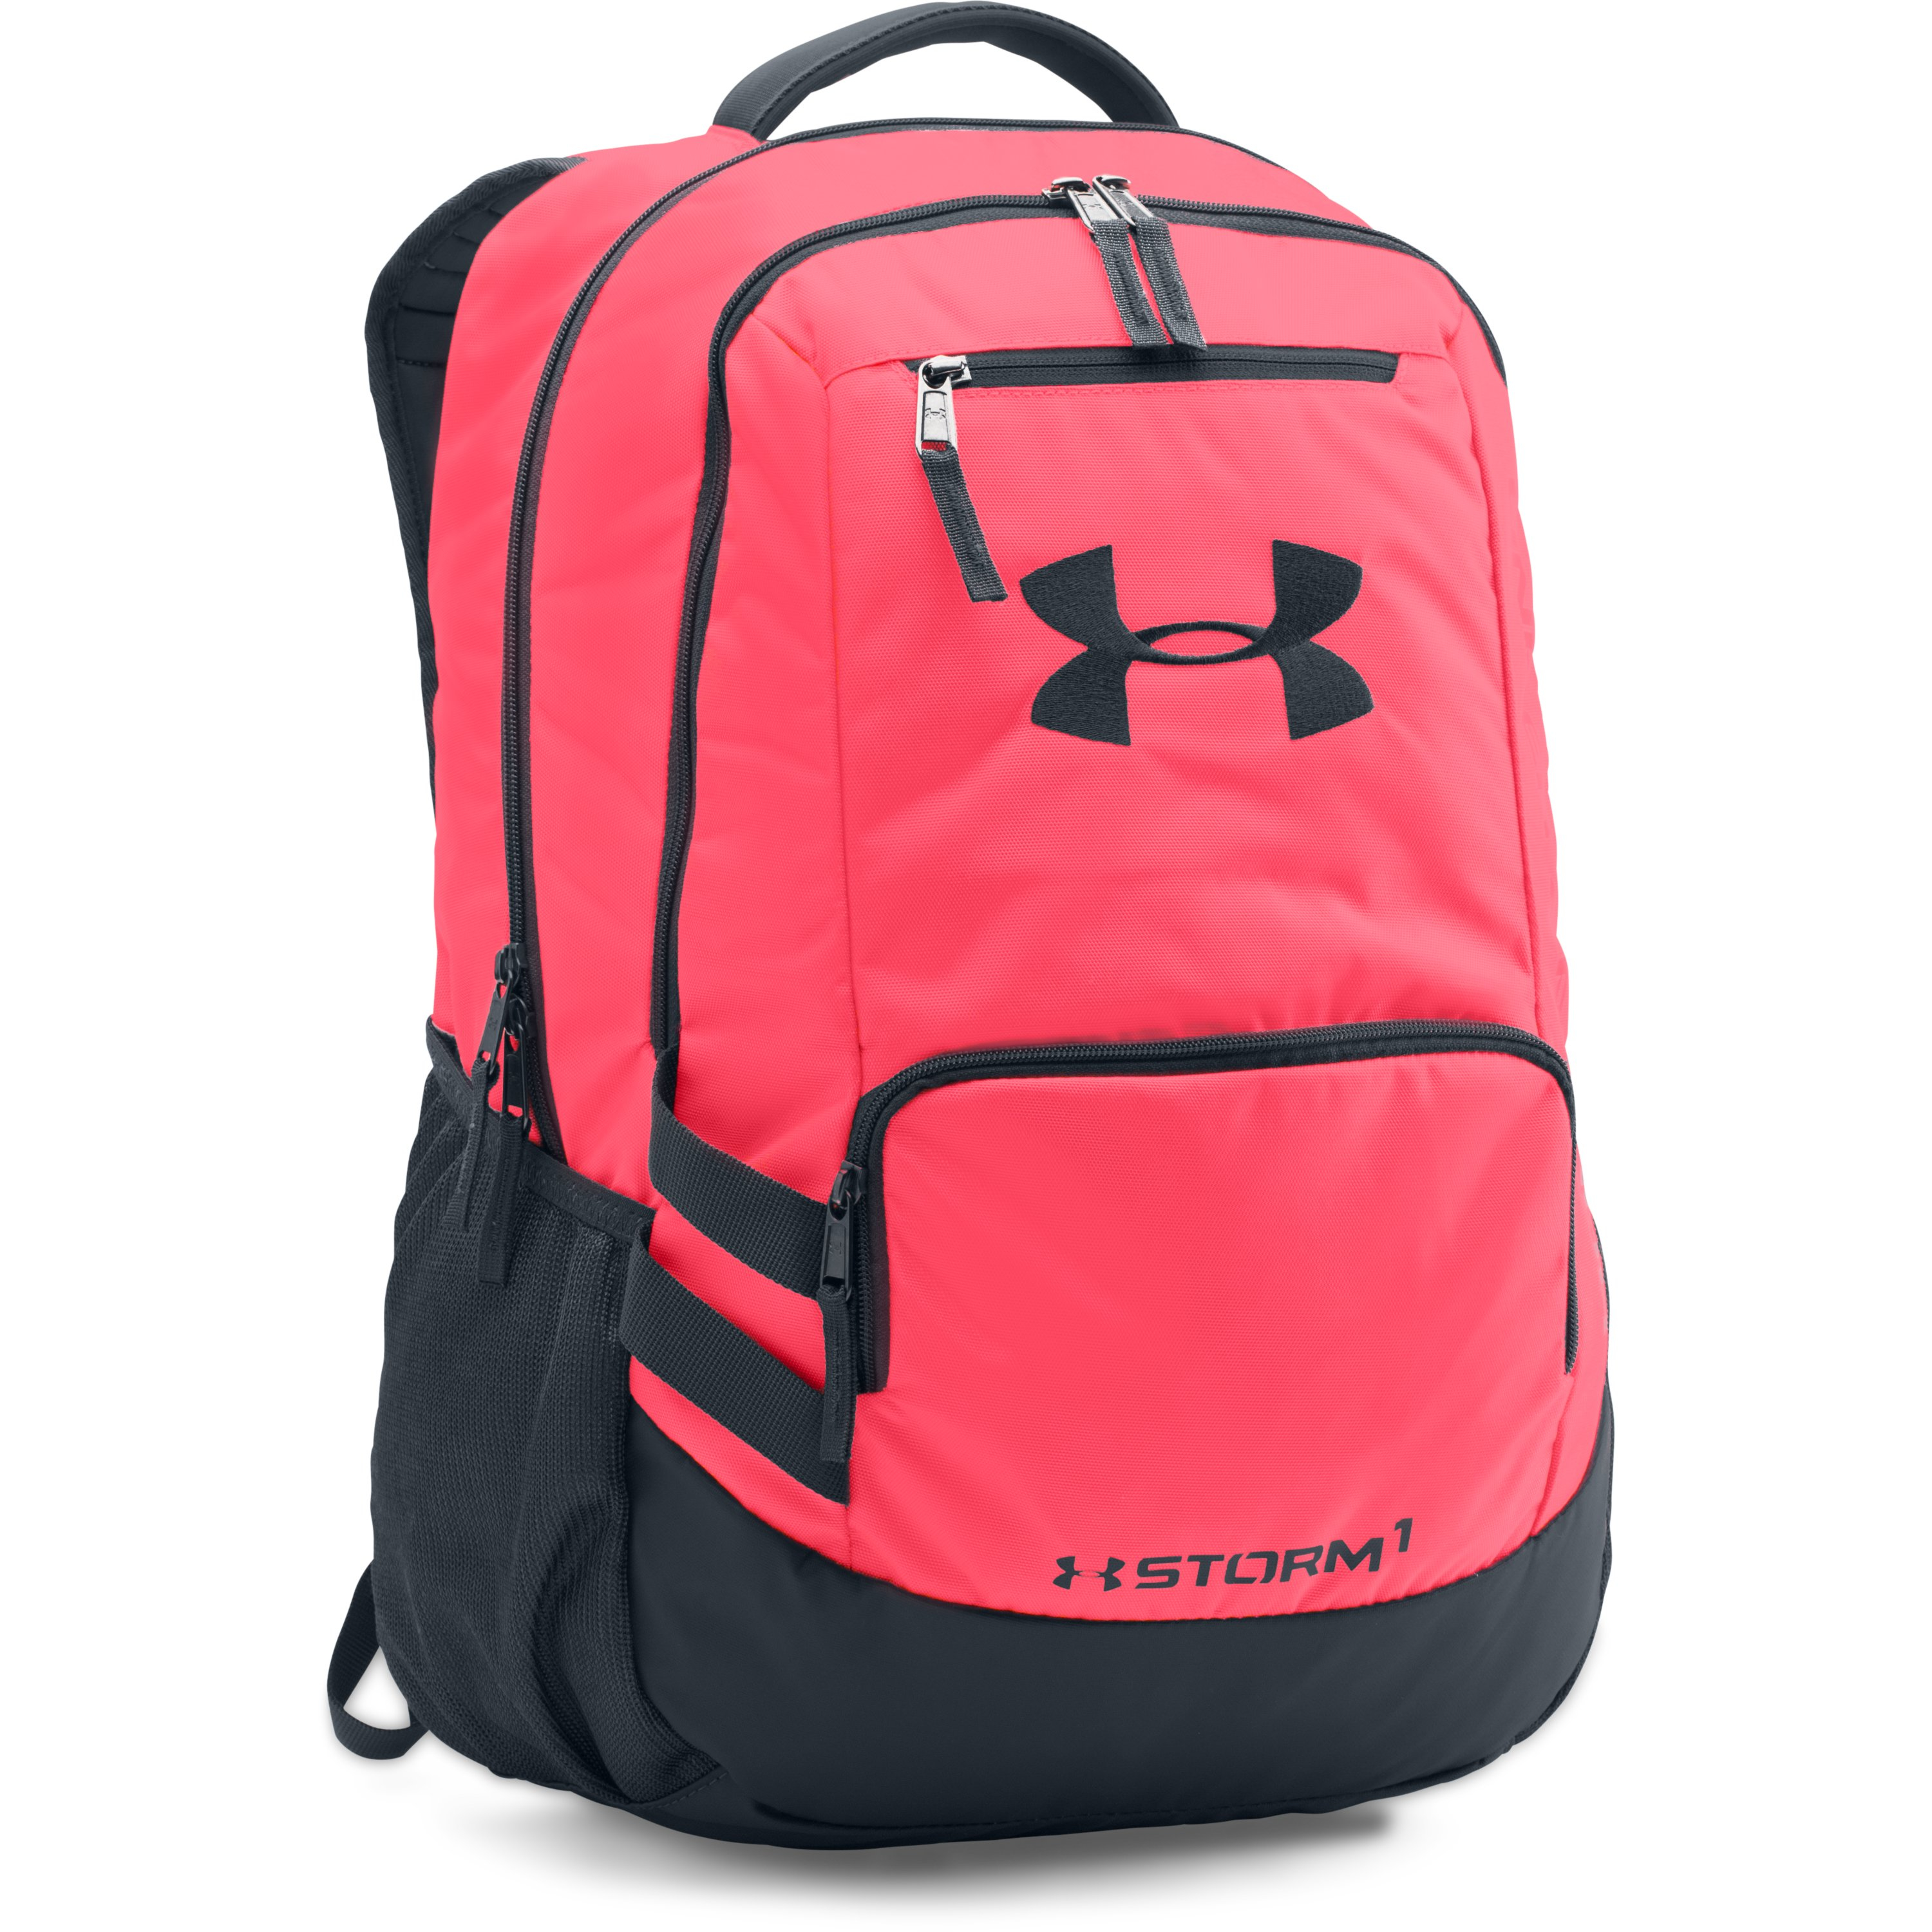 Lyst - Under Armour Ua Storm Hustle Ii Backpack a2d8fdc838498